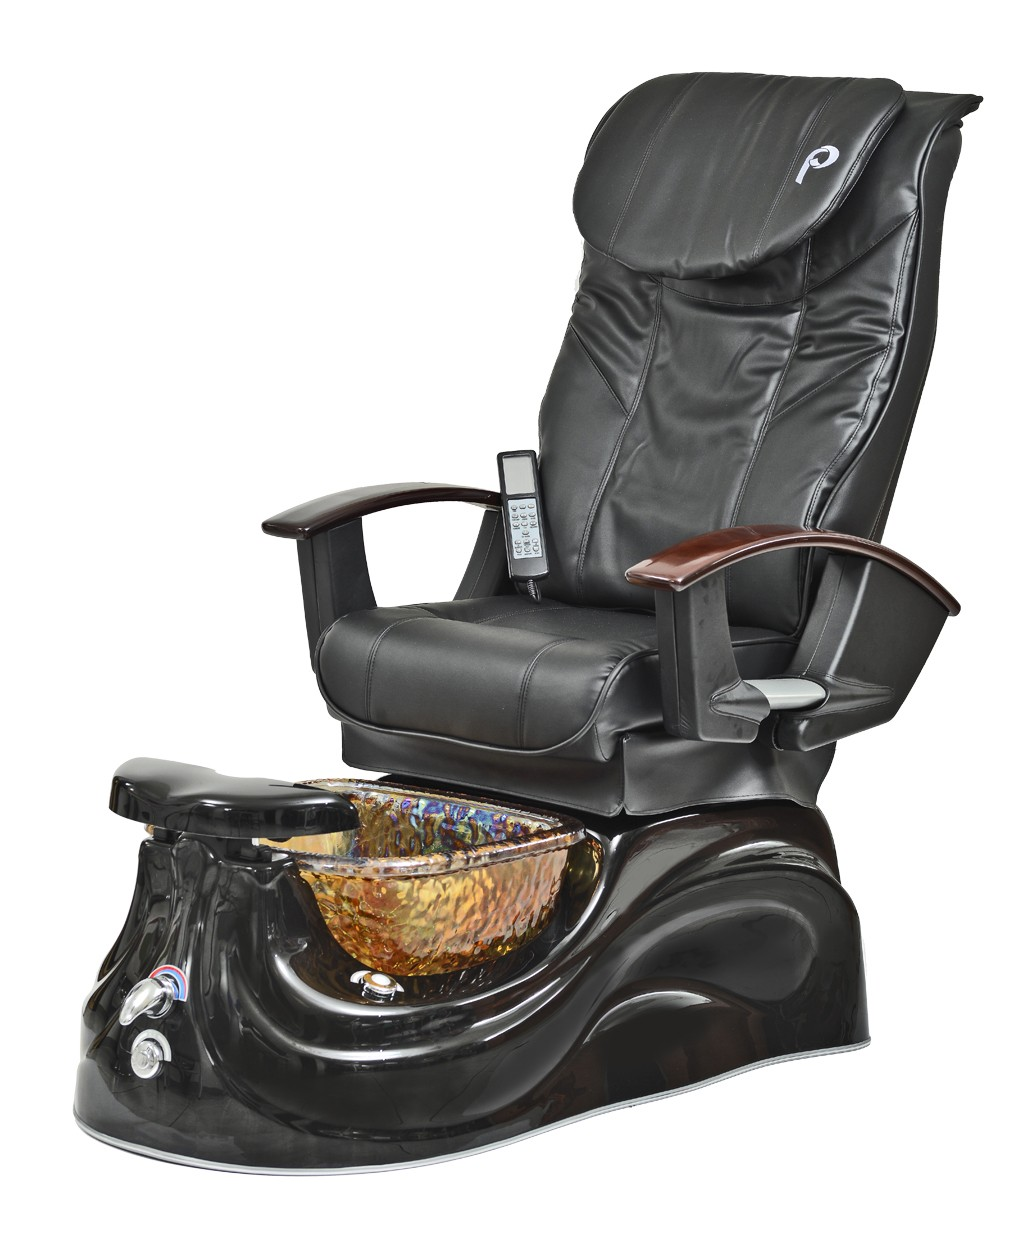 Pedicure Chair Pibbs Ps65 San Marino Pipeless Pedicure Spa W Glass Bowl